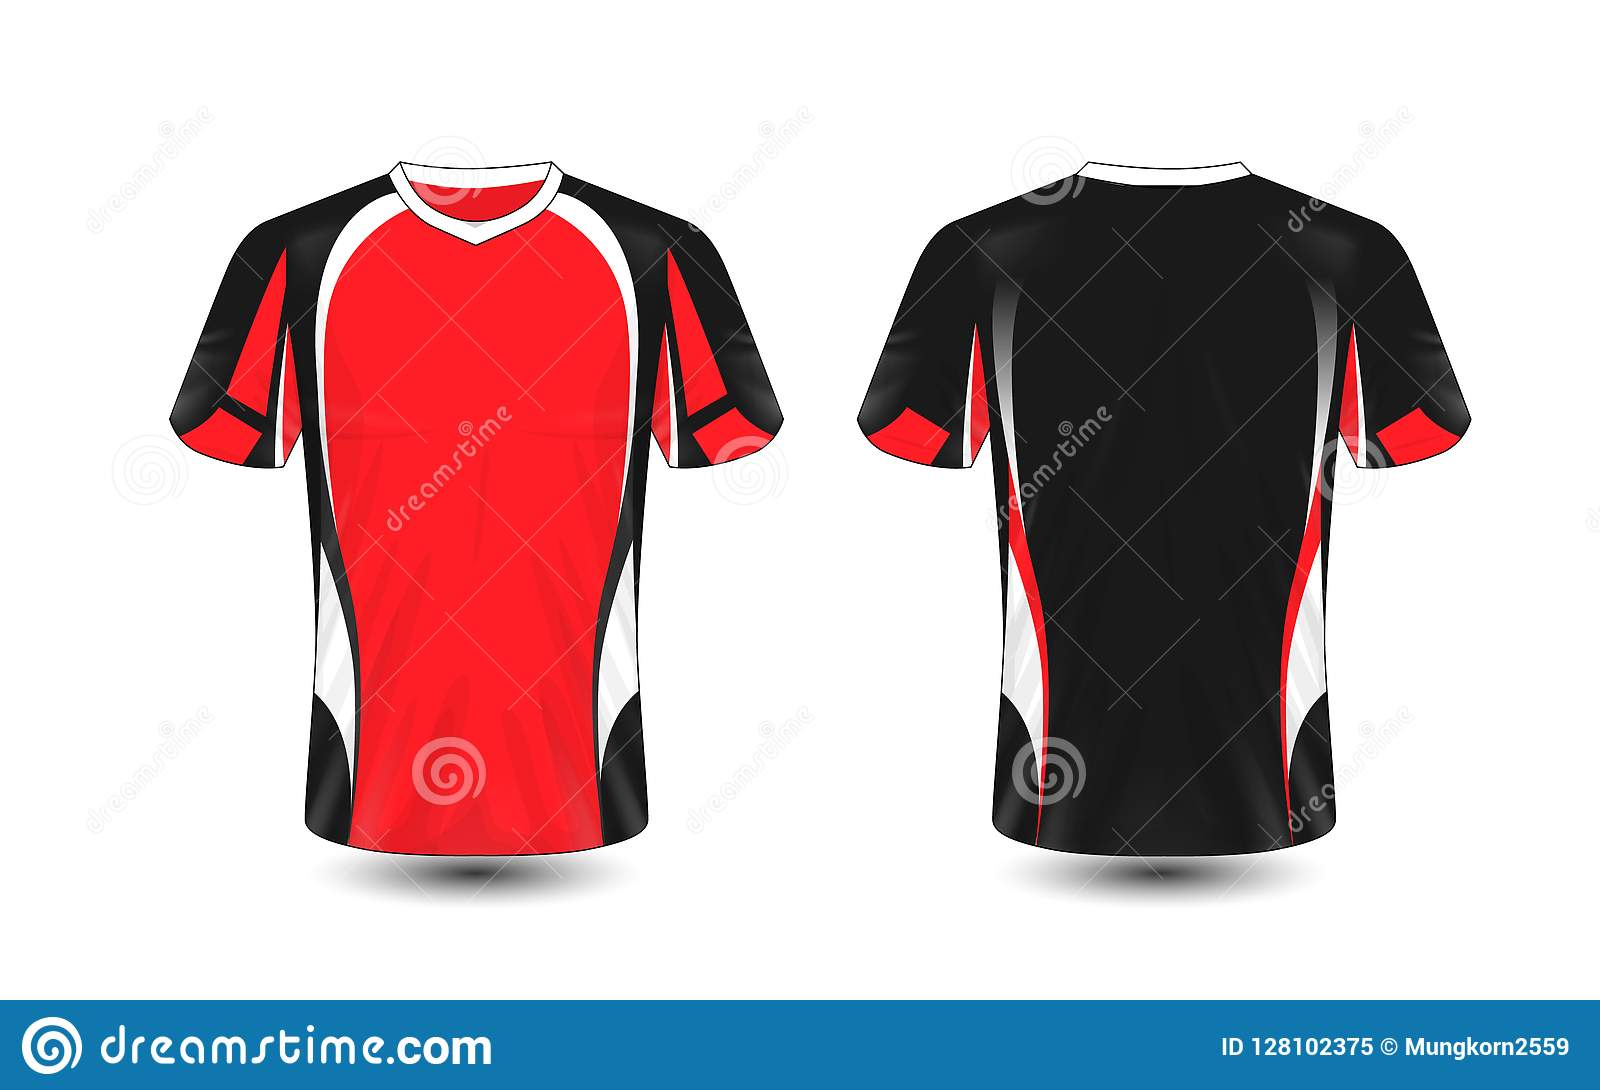 1e7cfc83f Red black and white layout e-sport t-shirt design template. Illustration  vector